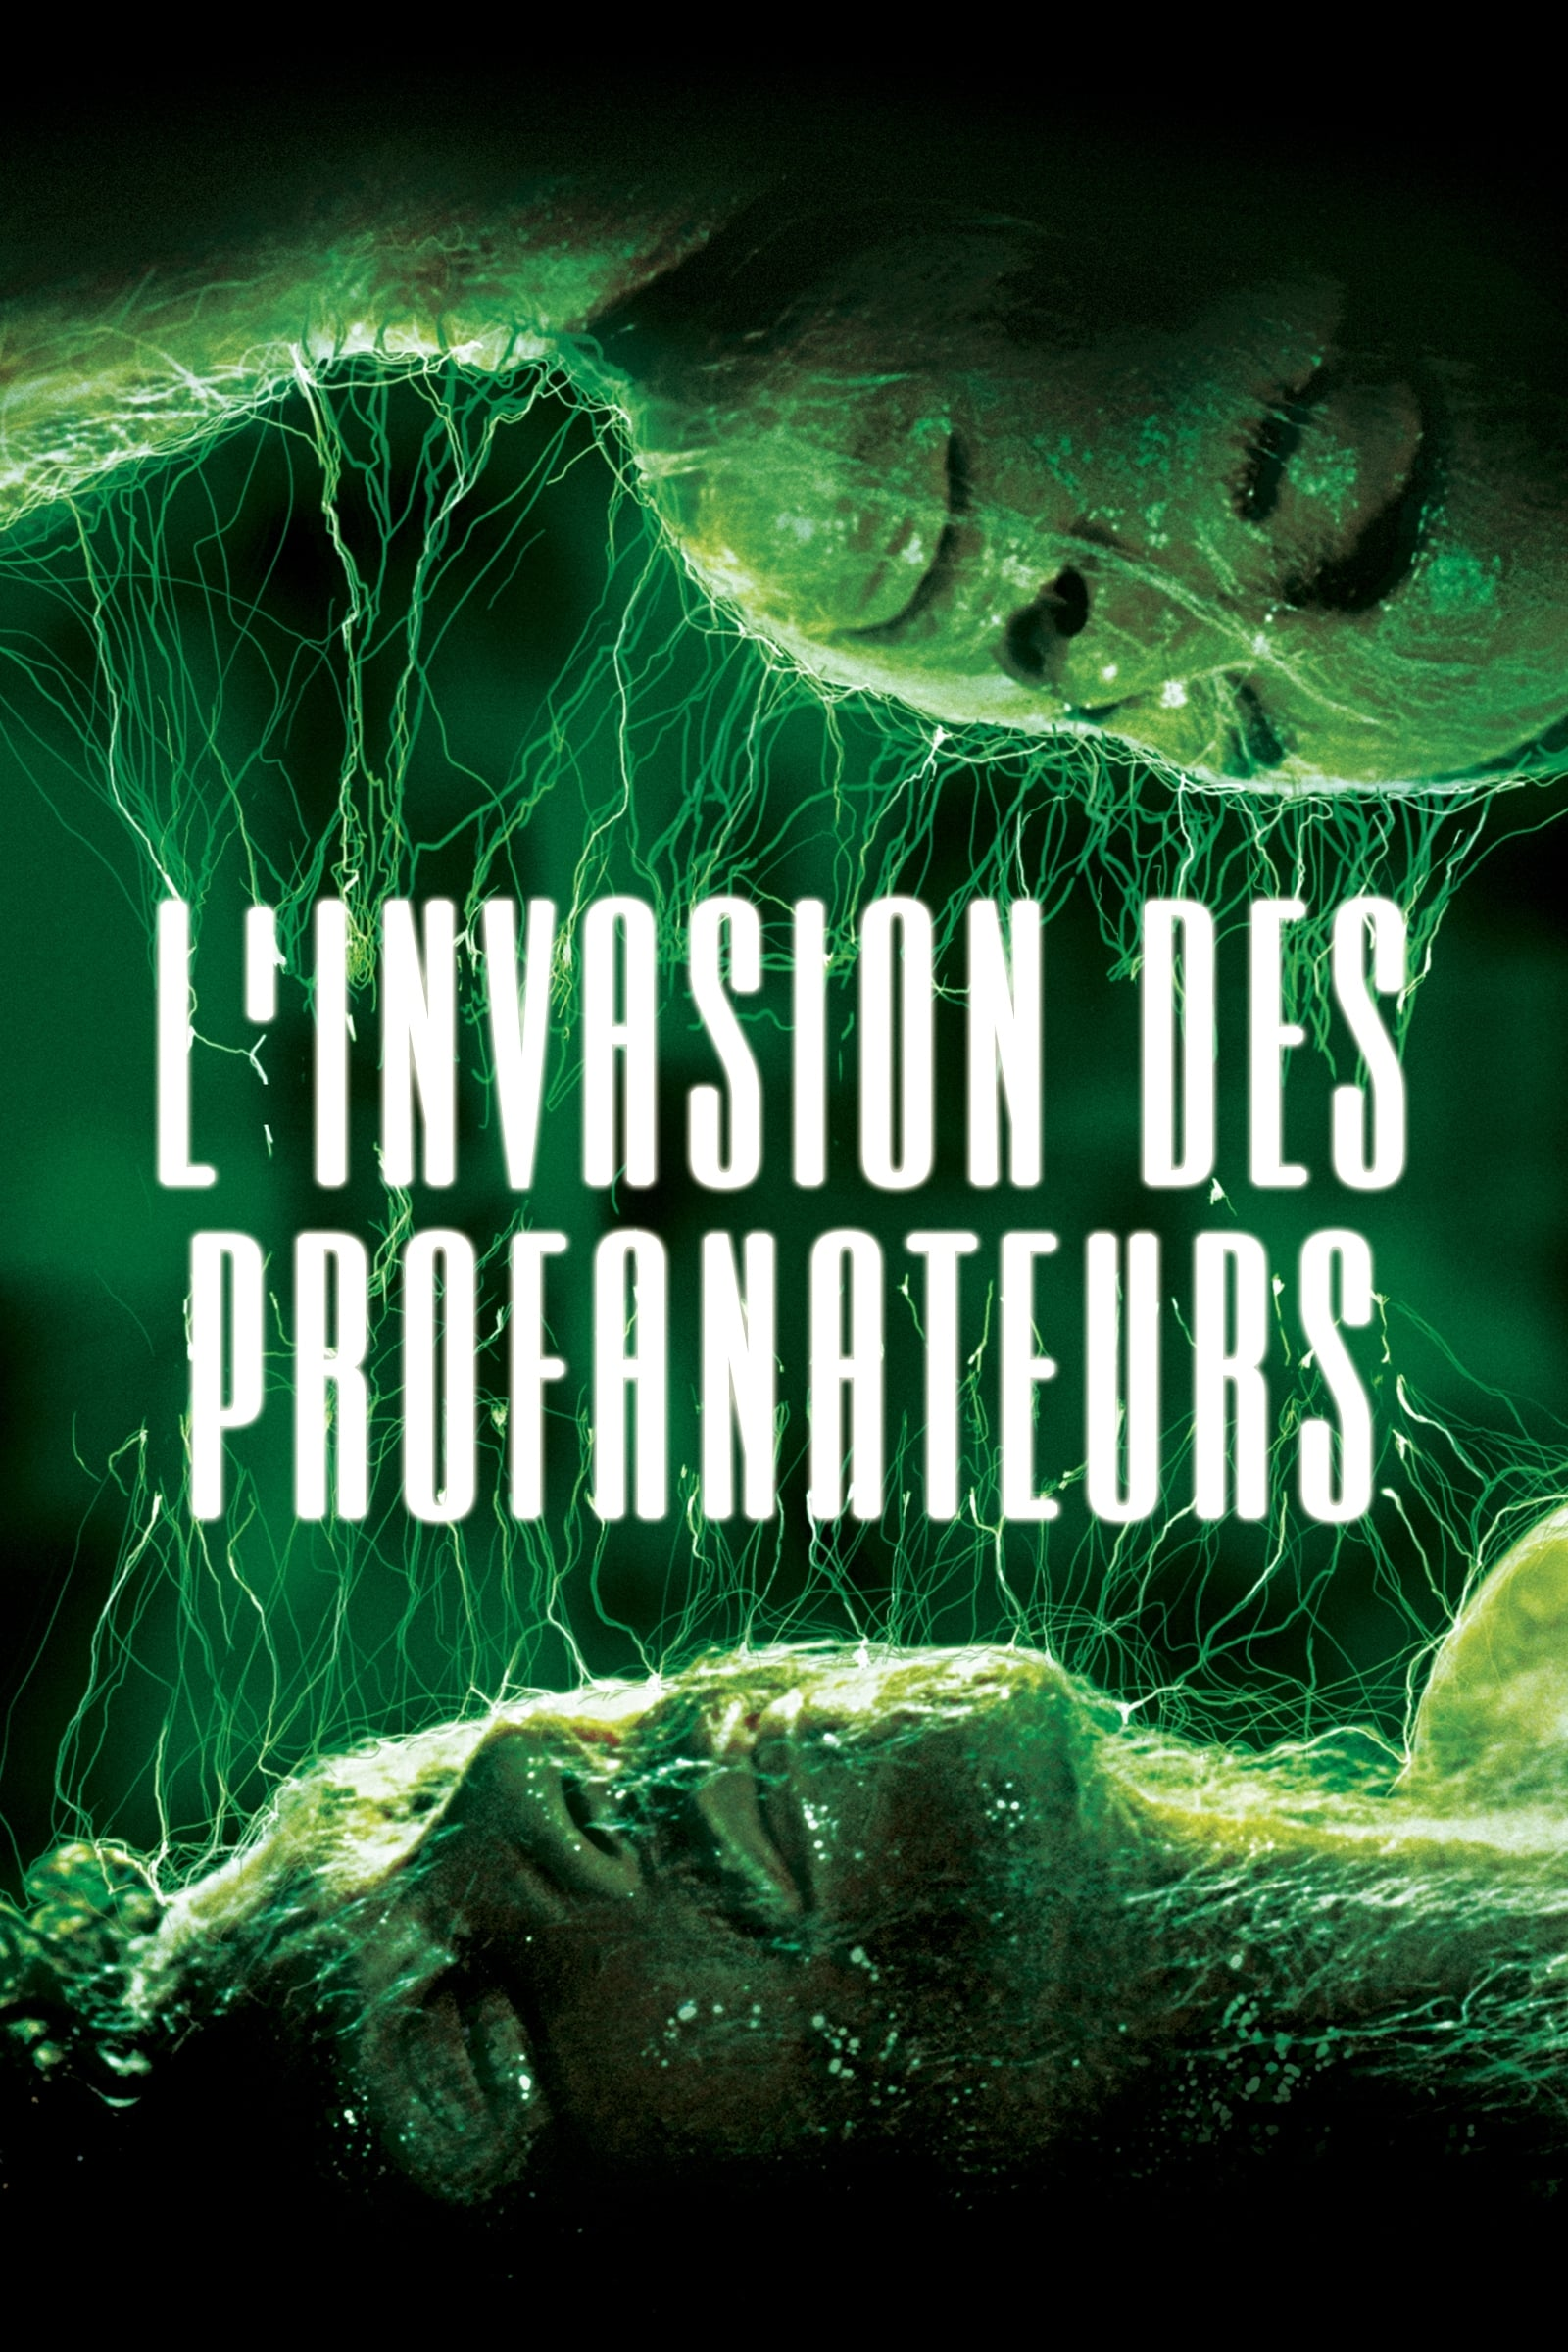 L'Invasion des profanateurs